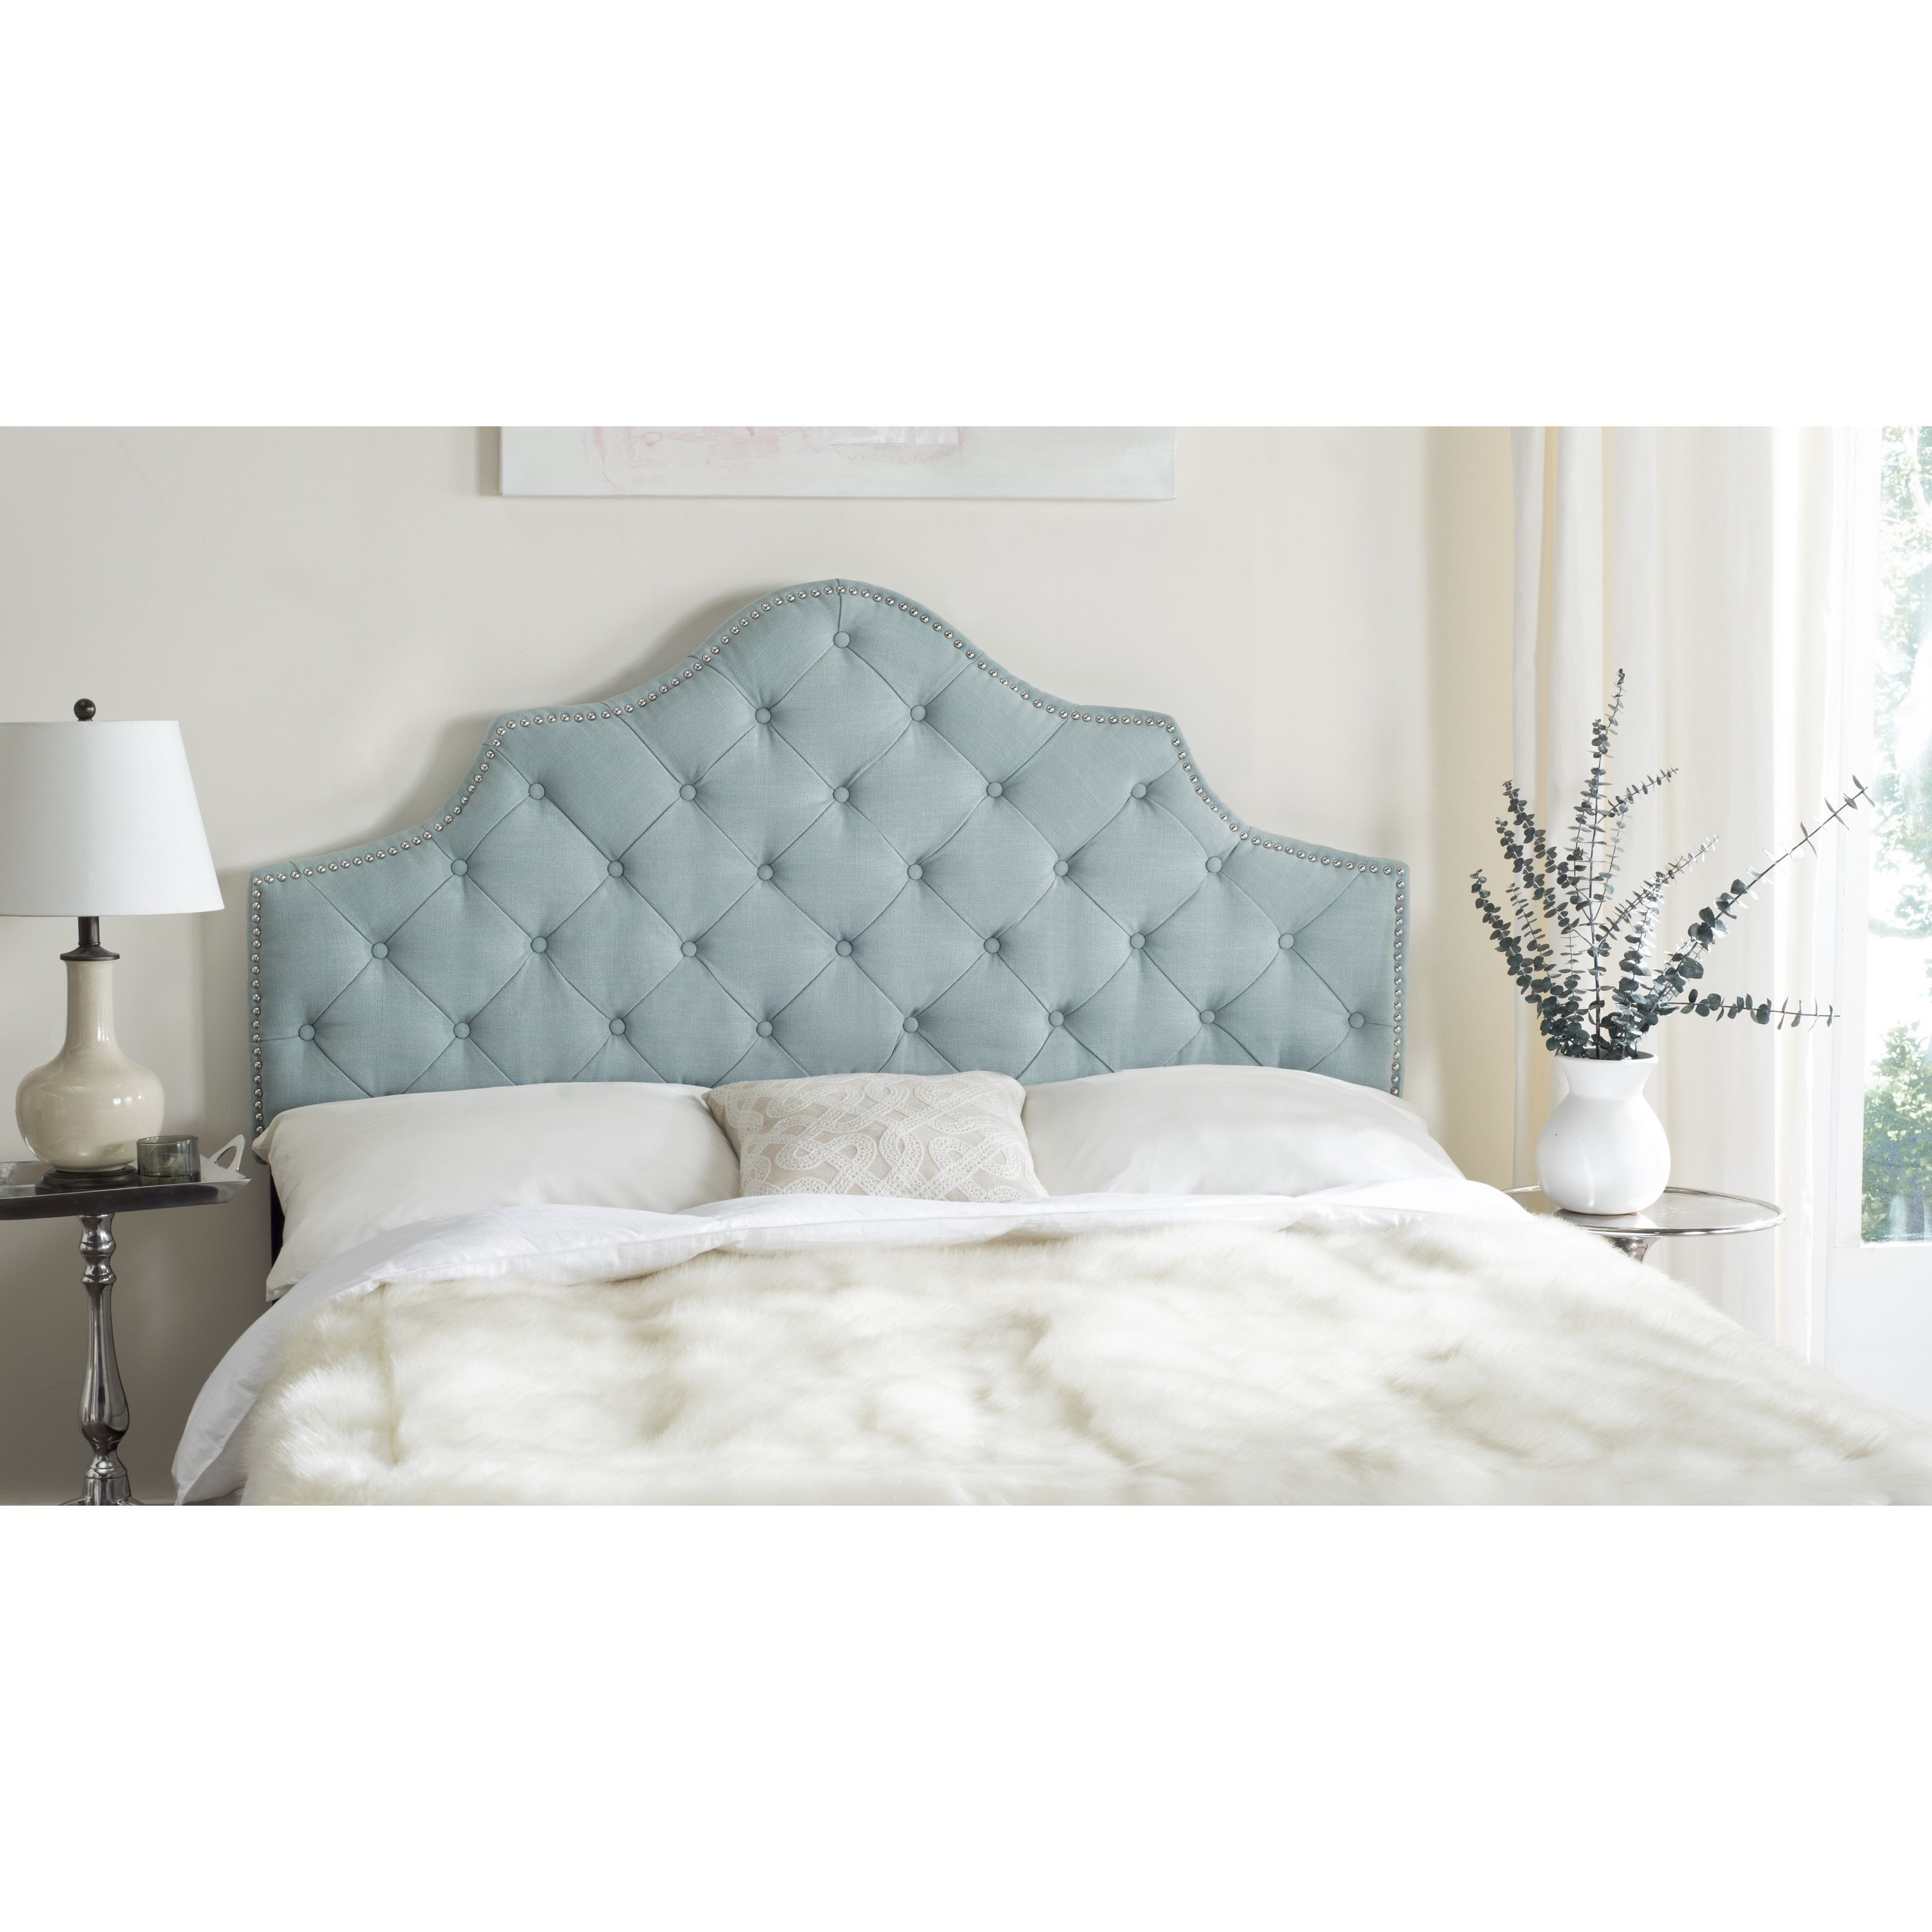 headboard grey scooped tufted shop upholstered square stores mattress headboards